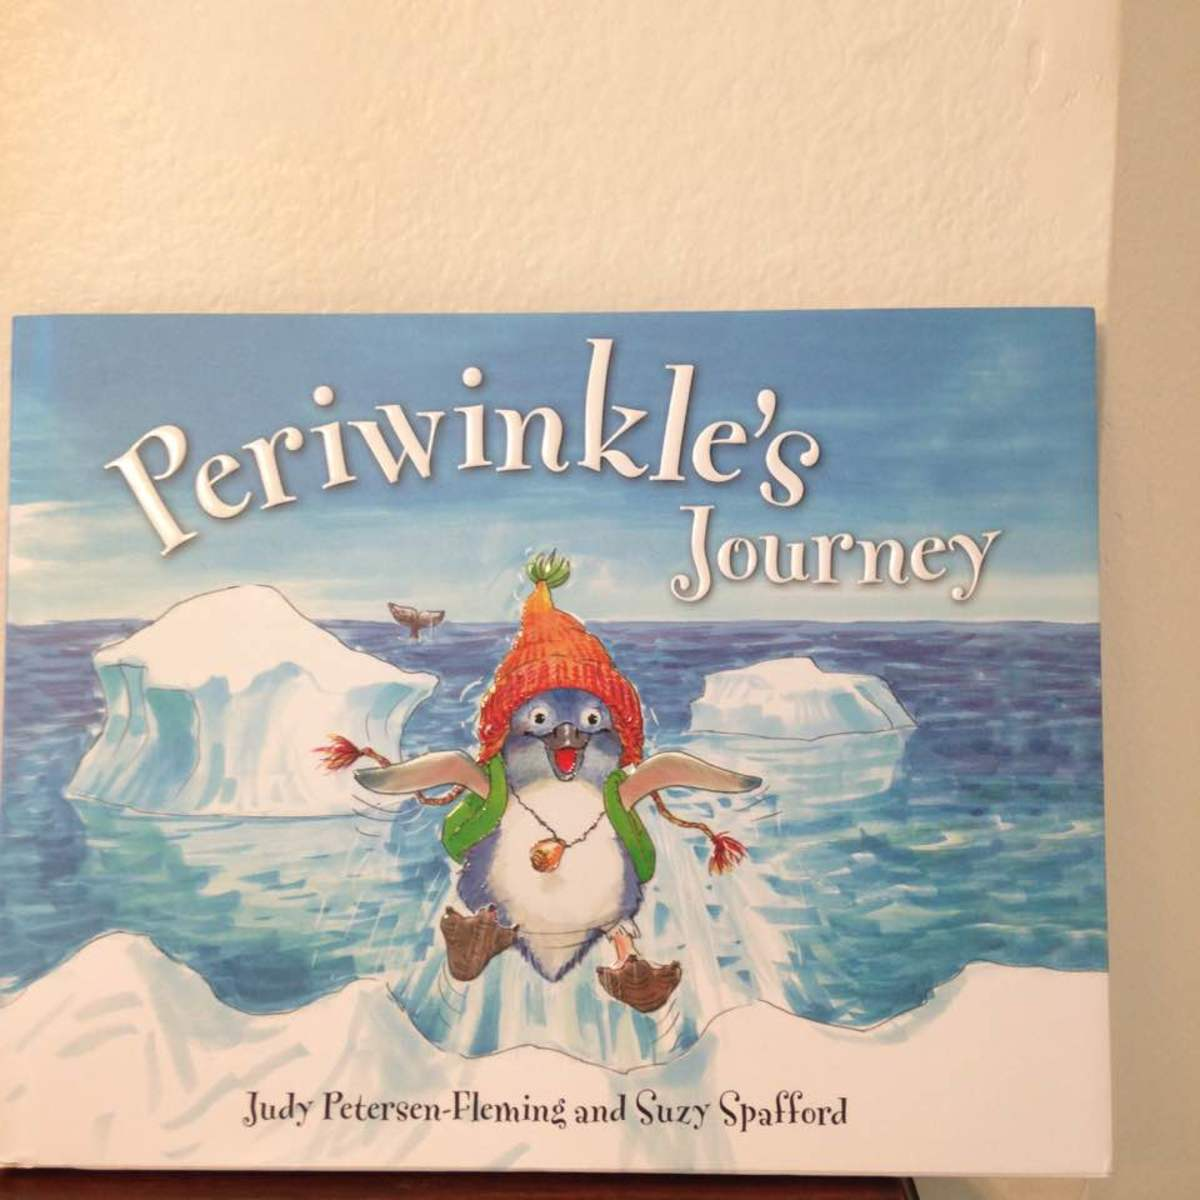 Beautiful read aloud for children with many lessons